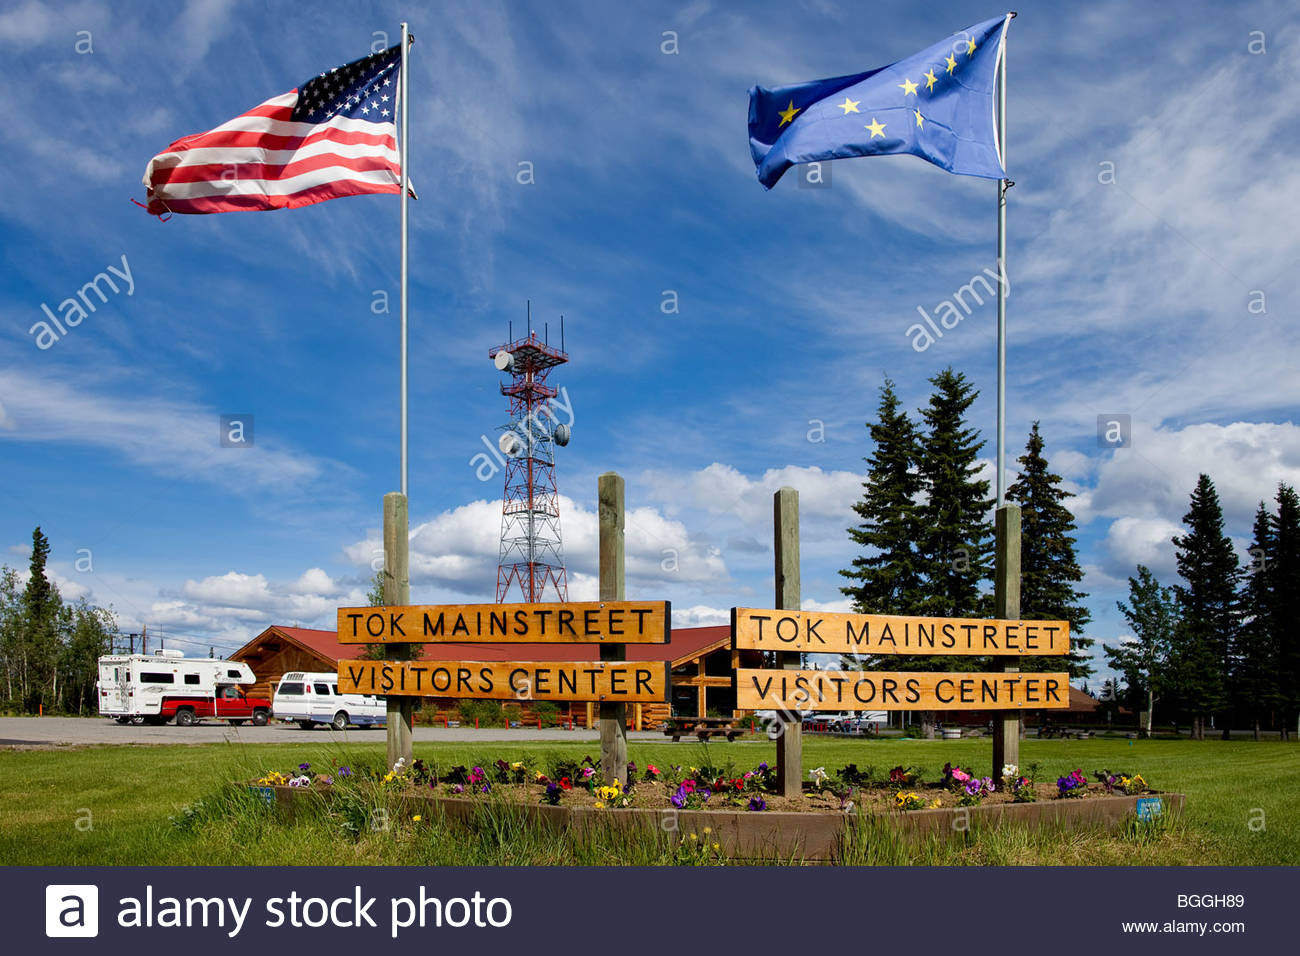 Alaska, Tok. Visitor's Center. DM - Stock Image